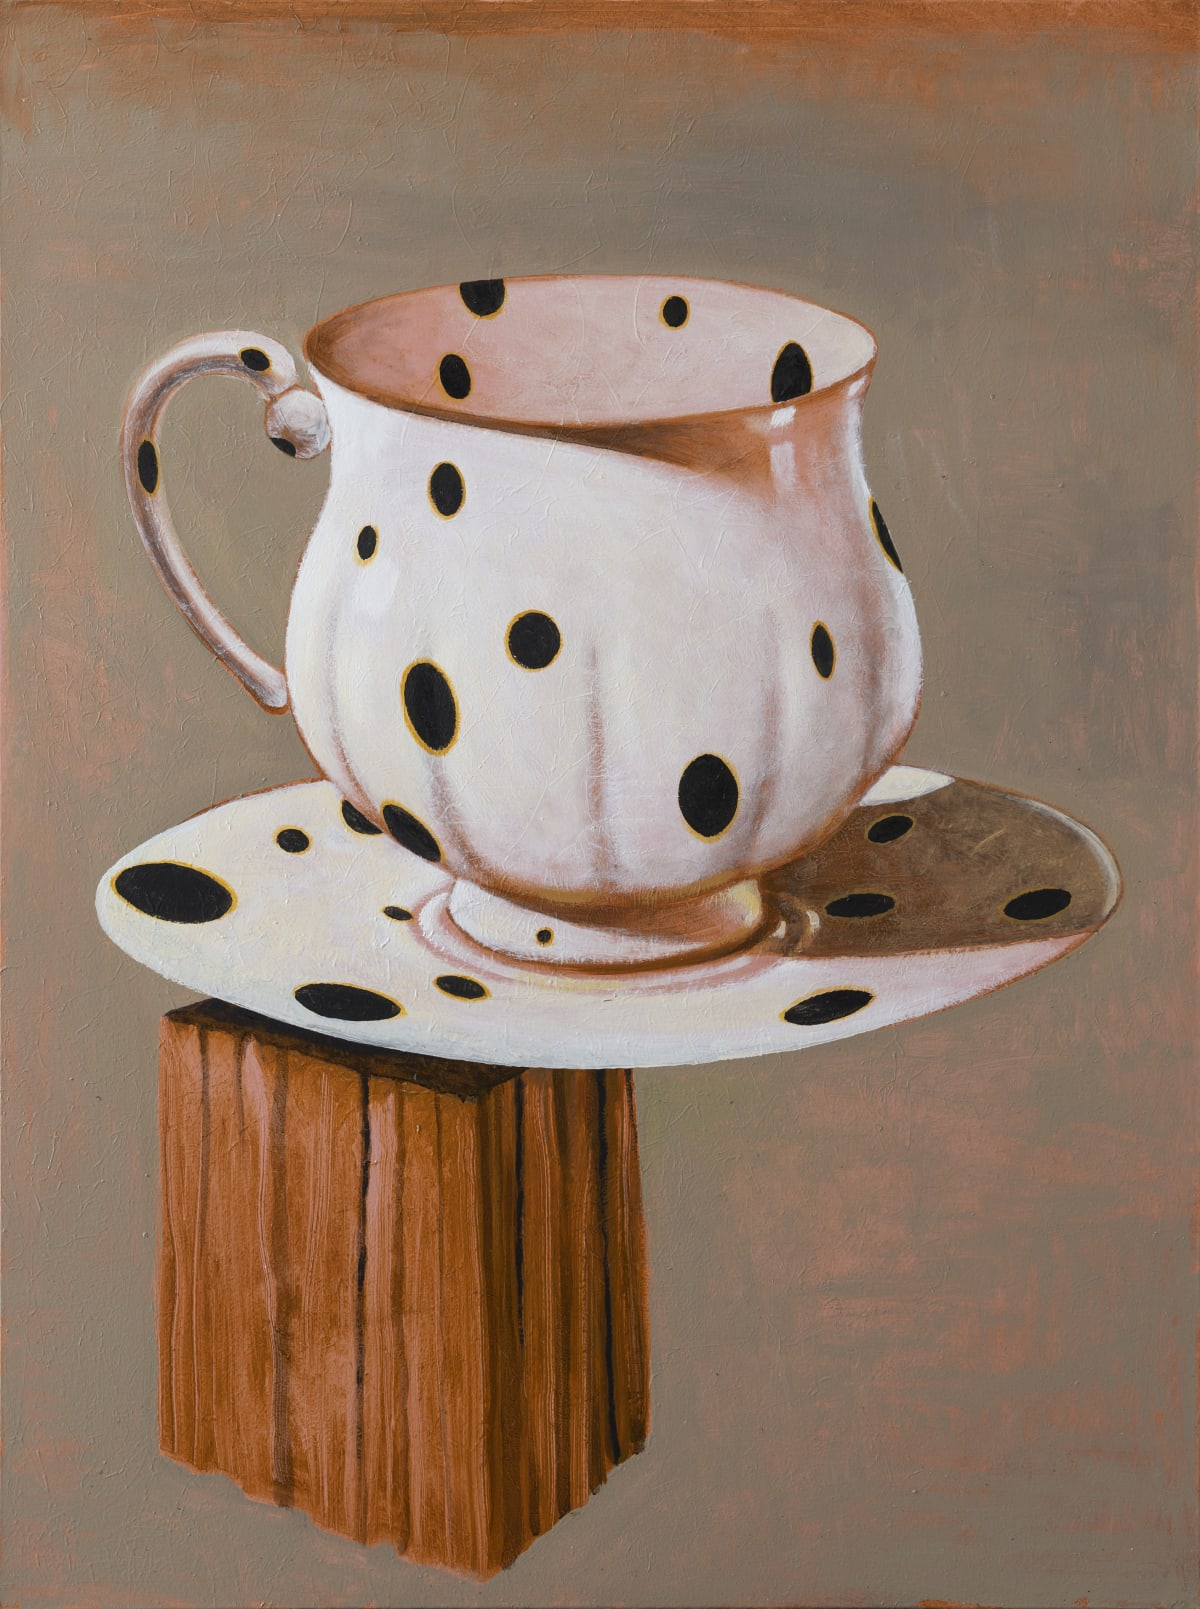 Derek Cowie Black Spot, 2019 Oil on Canvas 1220mm x 910mm